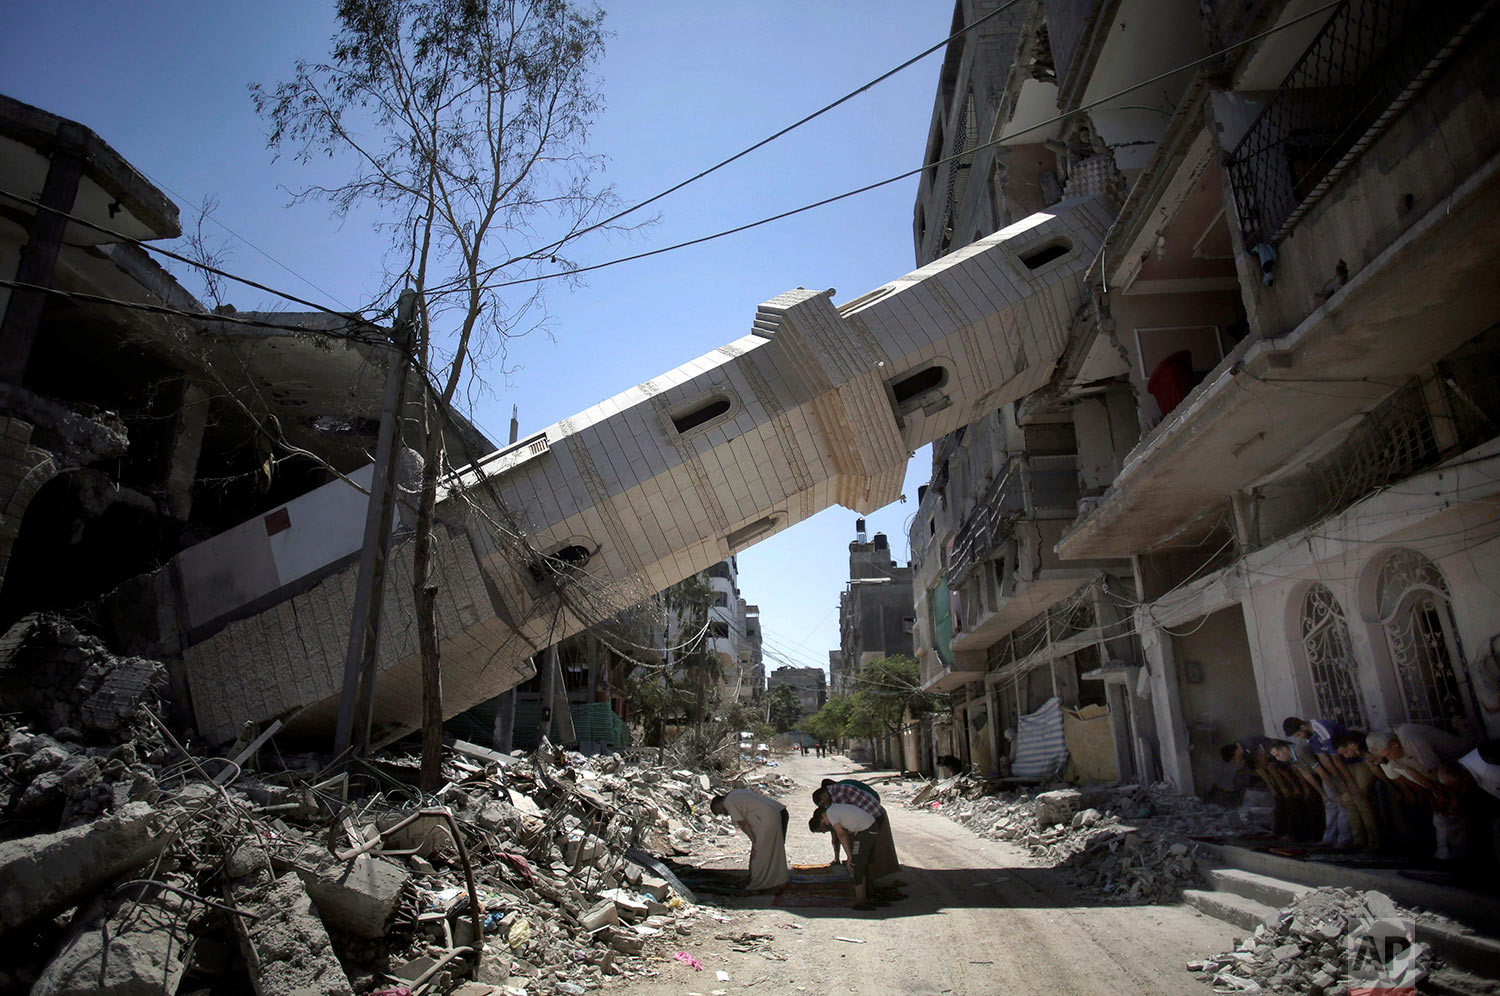 In this Aug. 8, 2014 photo, Palestinians pray beneath the fallen minaret of the Soussi mosque that was hit by Israeli strikes in Gaza City. (AP Photo/Khalil Hamra)